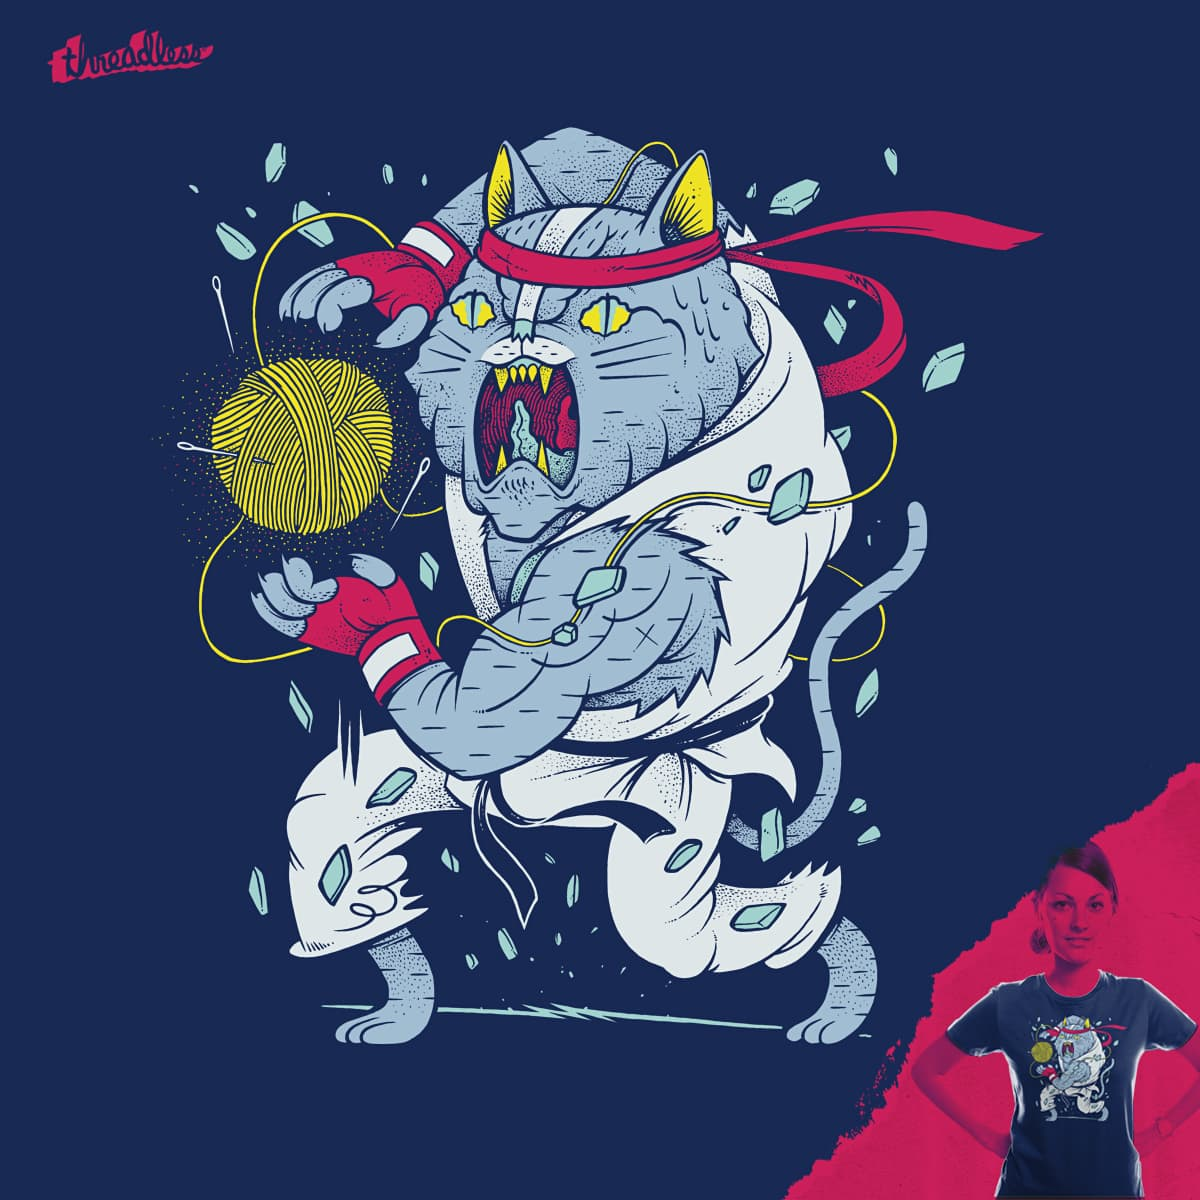 HADOUKAT by citizen rifferson on Threadless